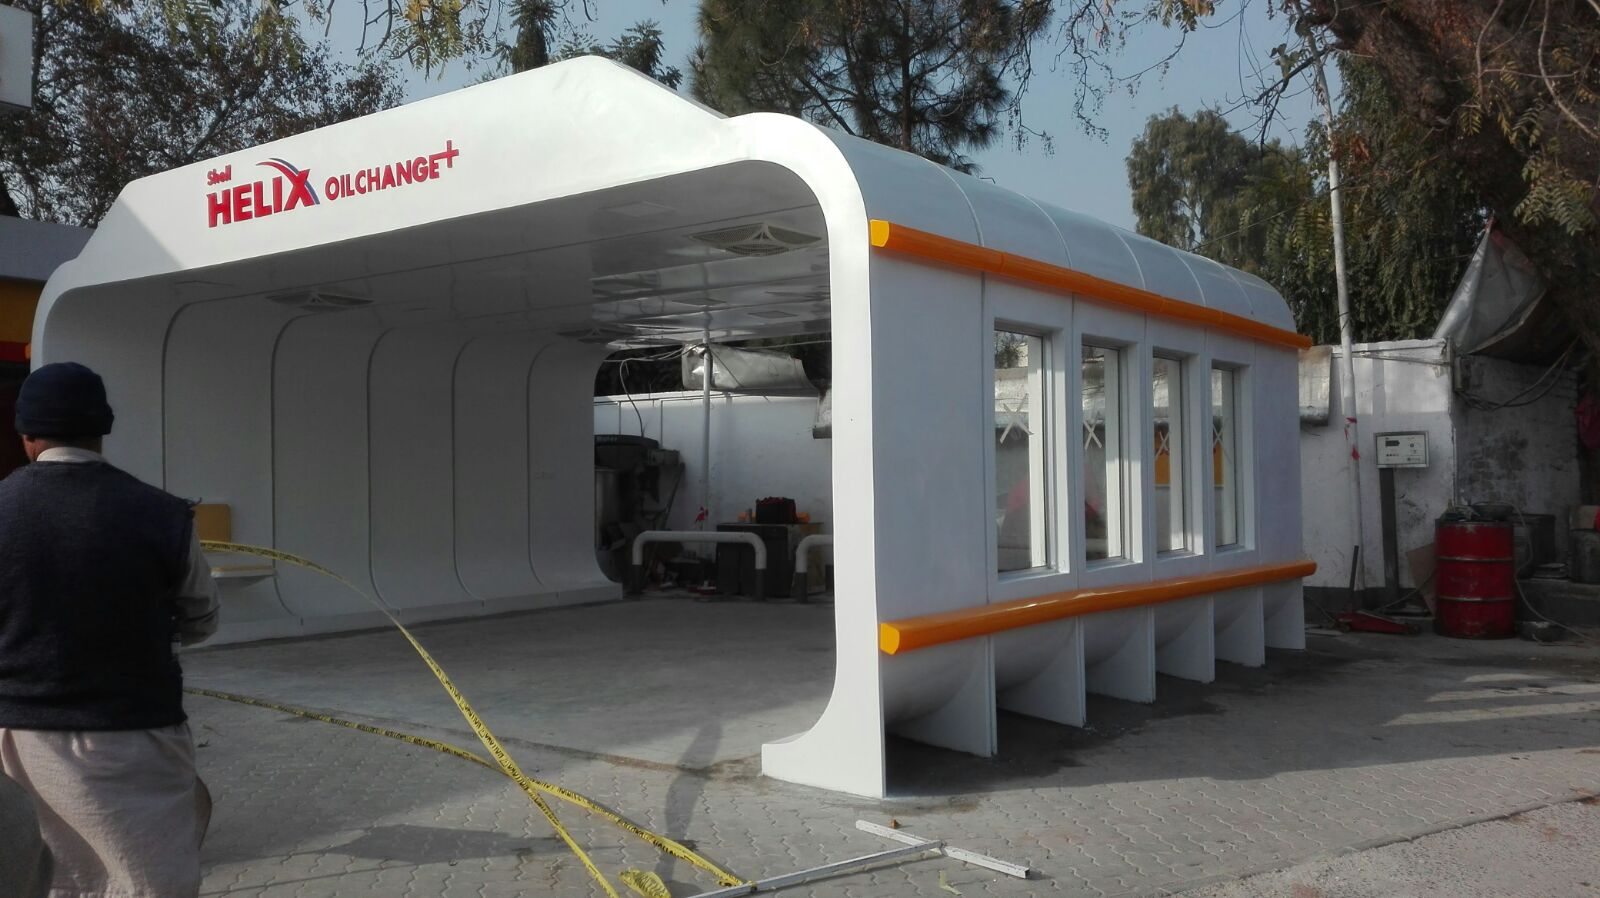 Fiberglass_fiberglass-canopy_Double-bay-canopy_oil-change-canopy_canopy-forr-shell-sation